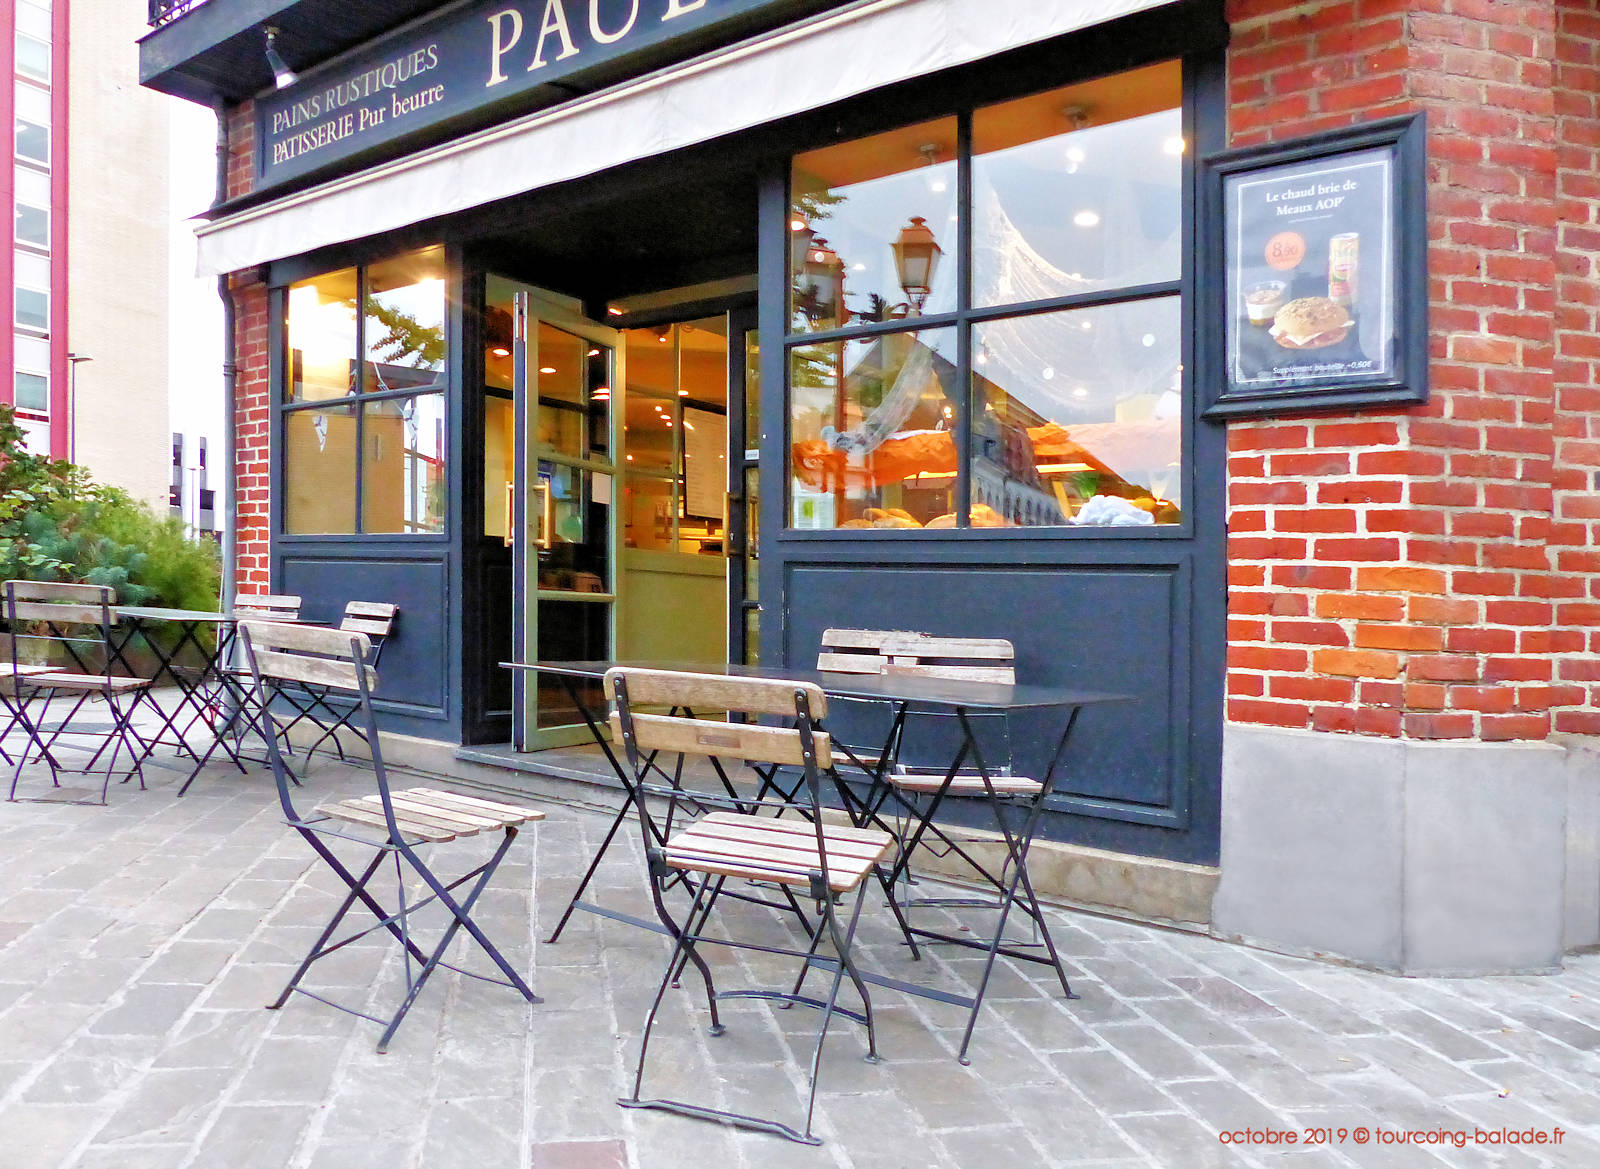 Paul - Terrasse rue St-Jacques, Tourcoing.